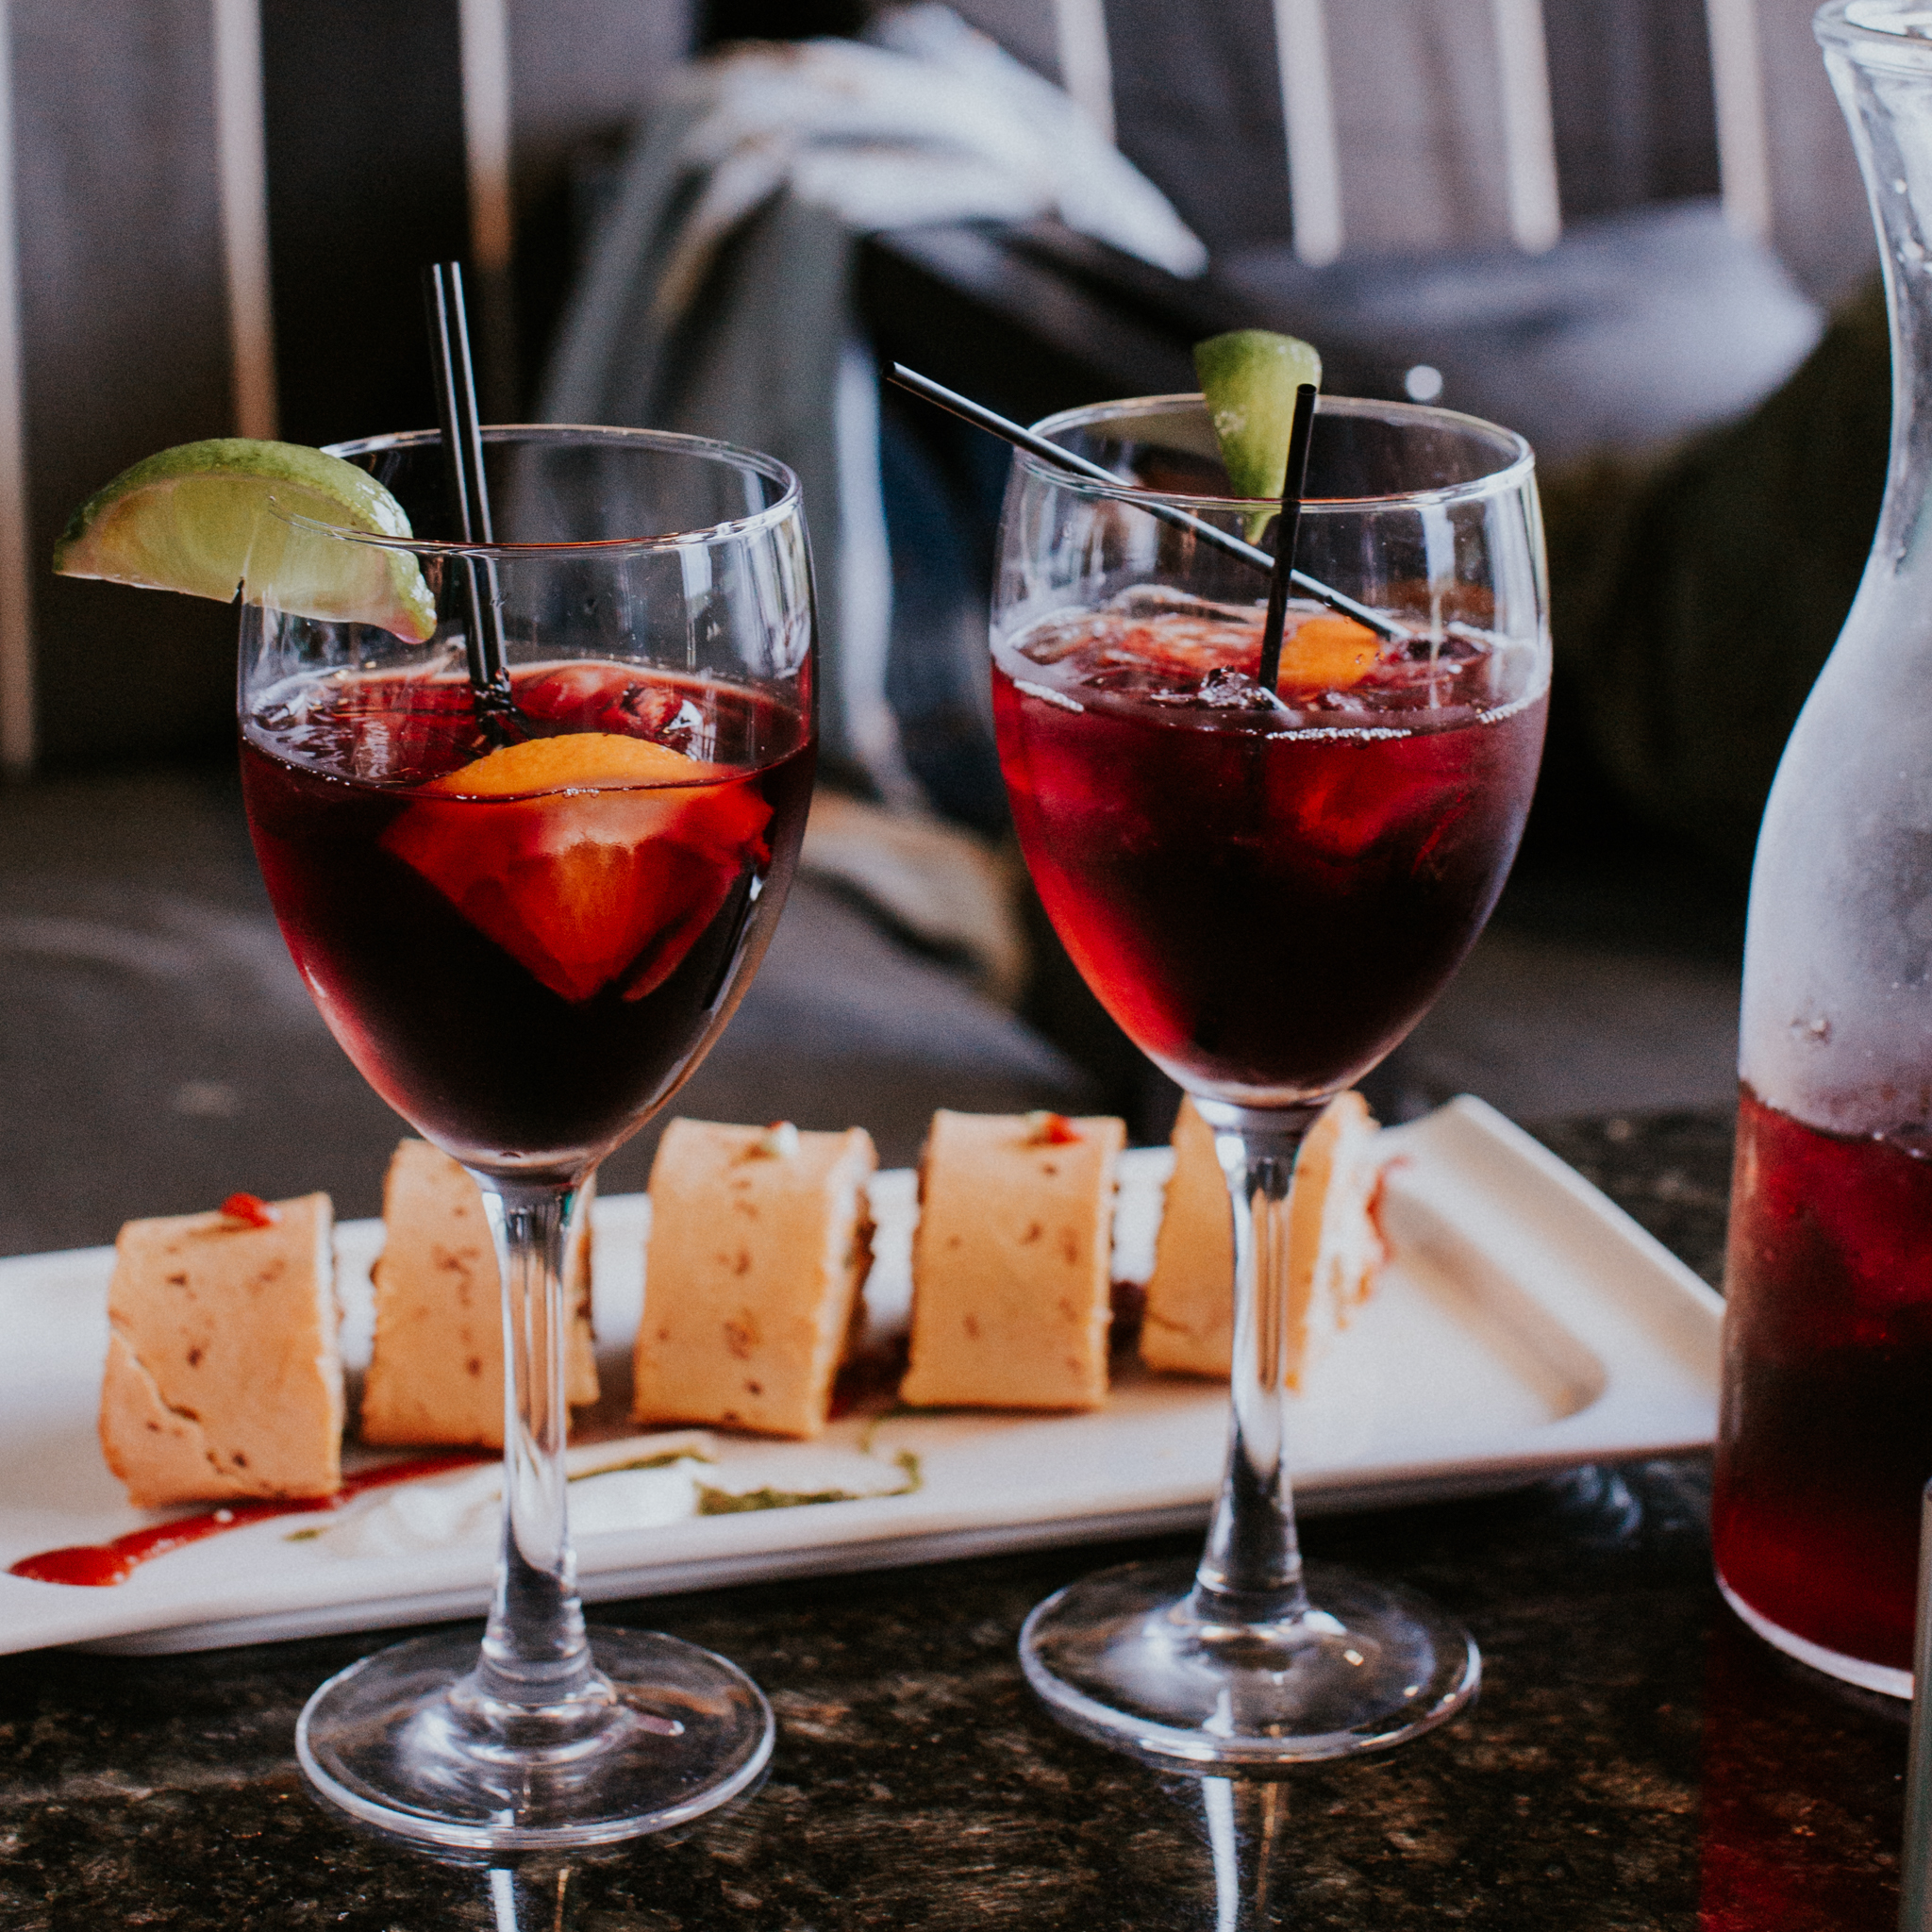 This summer we're really into sangria. Now add some appetizers to that and I'm sold on any summer night. :)